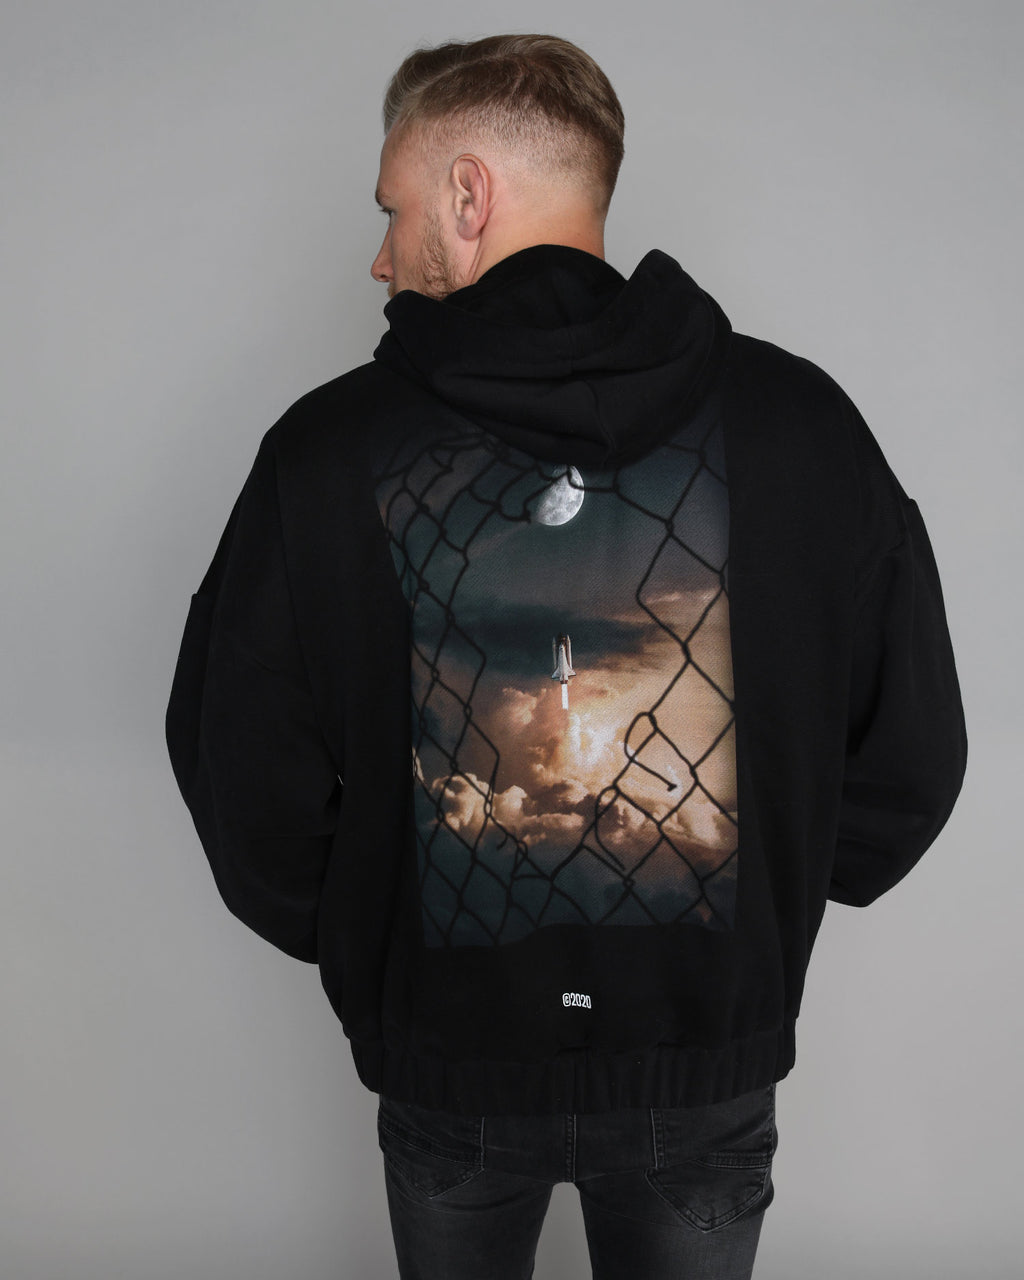 To The Moon Zip-Hoodie - HoodieCollab